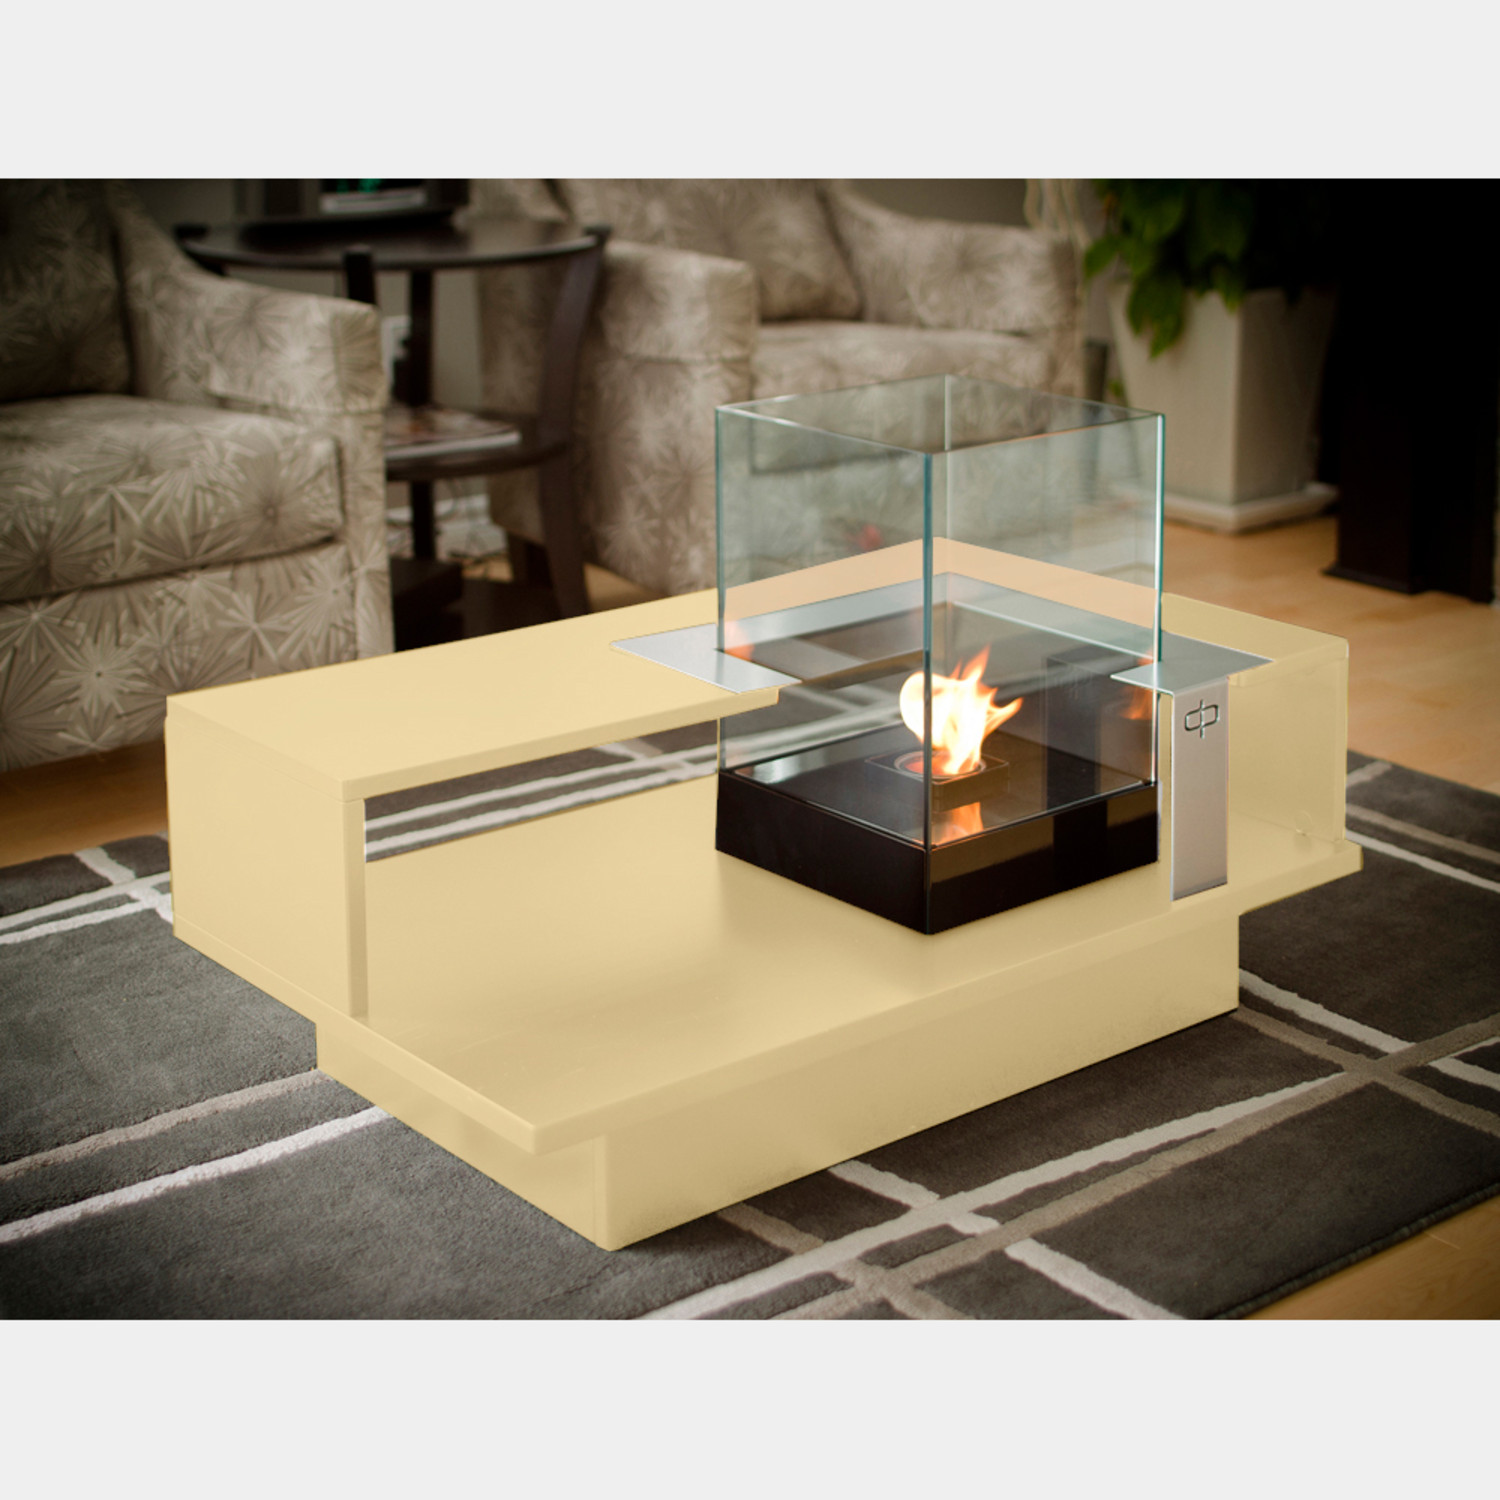 Level compact coffee table with fireburner black textured - Les plus belles tables basses ...